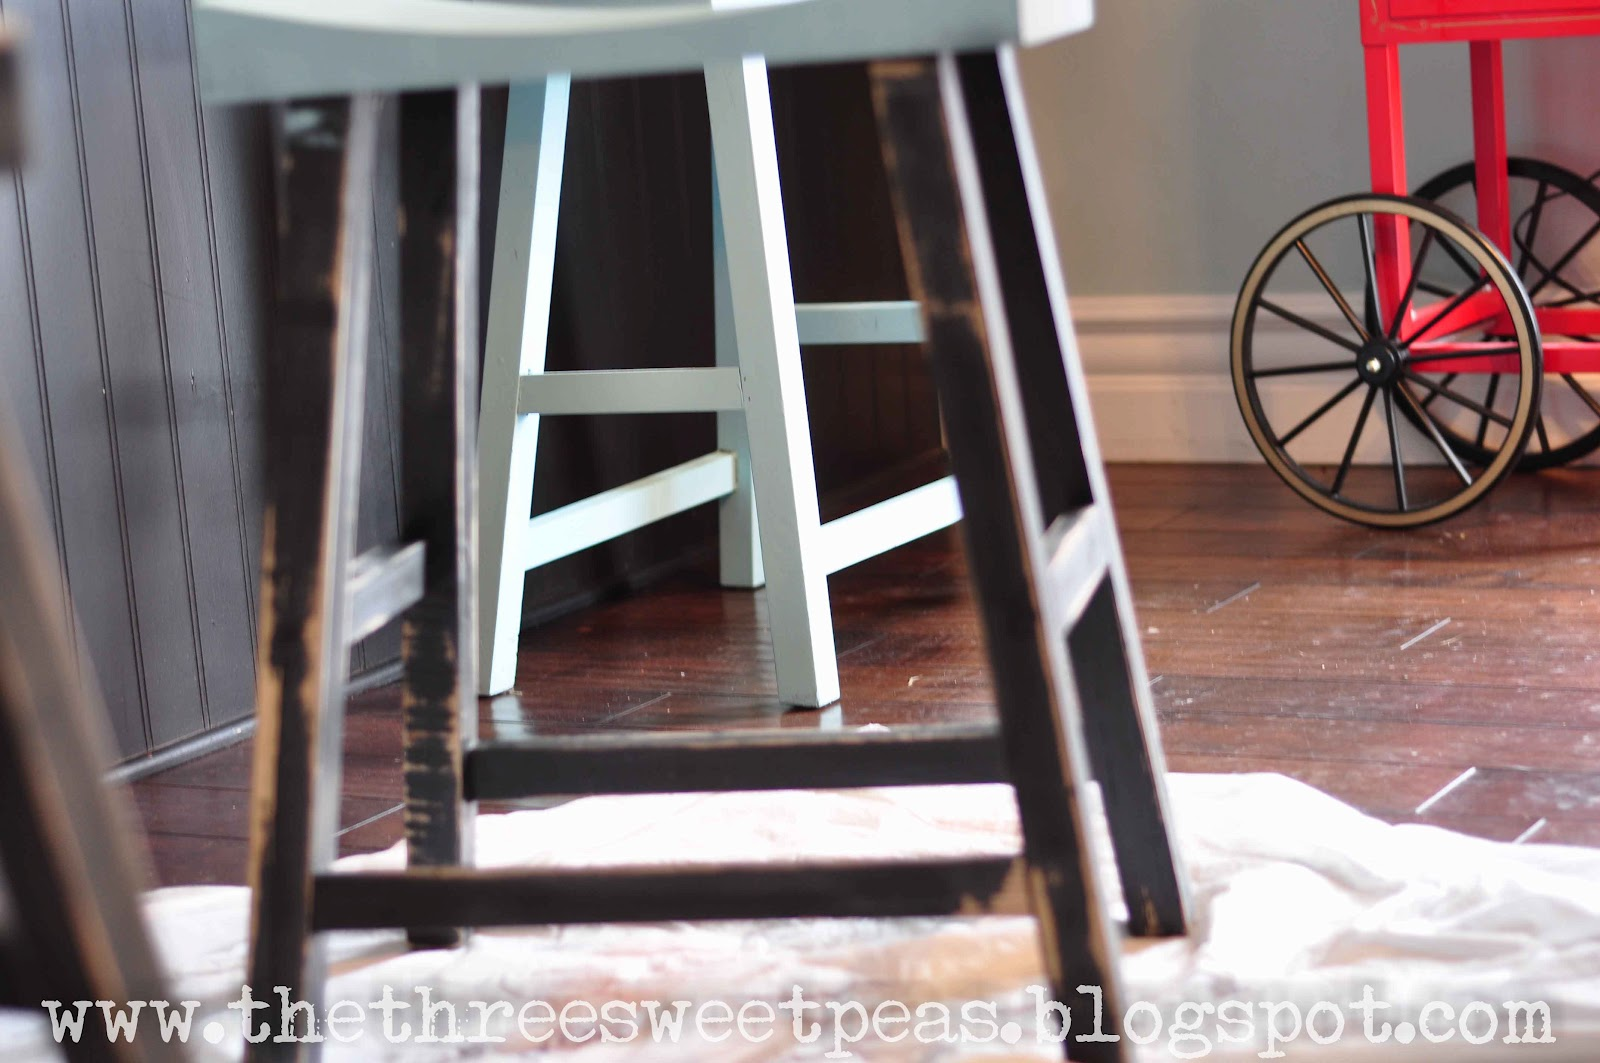 Wondrous The Three Sweet Peas Counter Stool Redo Before And After Dailytribune Chair Design For Home Dailytribuneorg